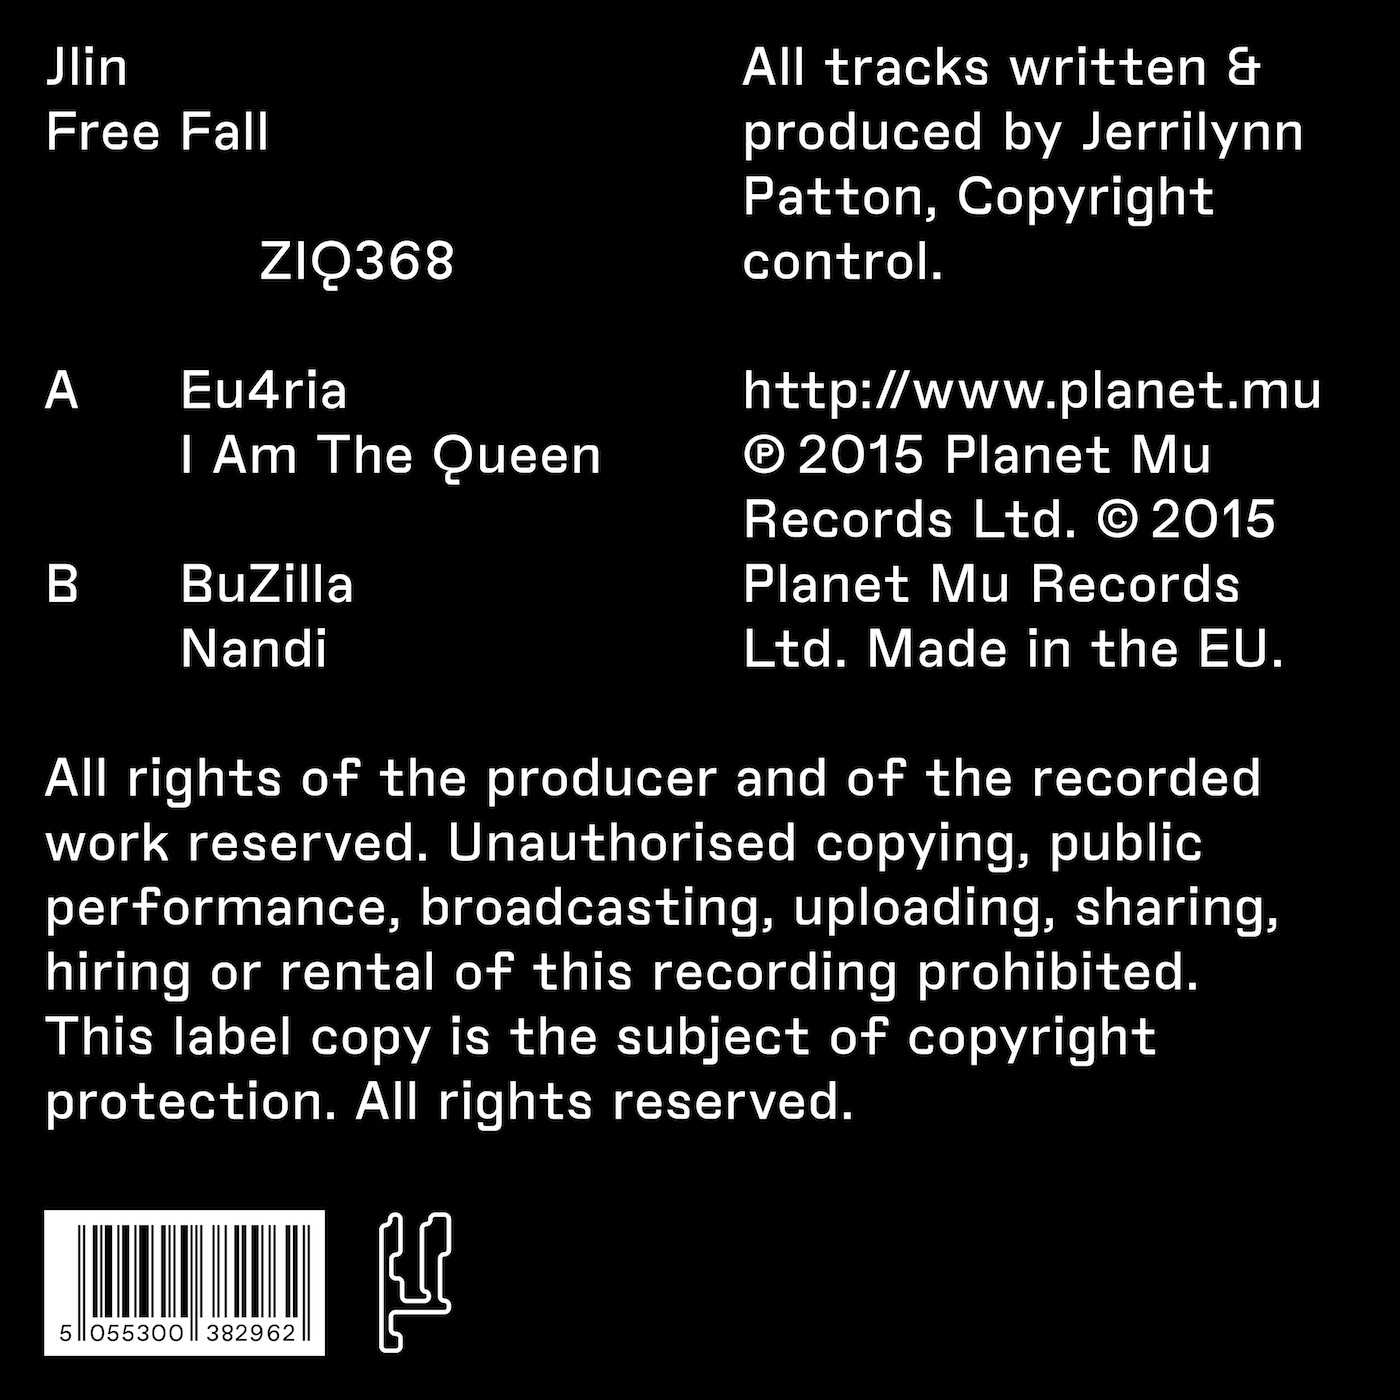 Jlin - Free Fall [EP] | Music Review | Tiny Mix Tapes